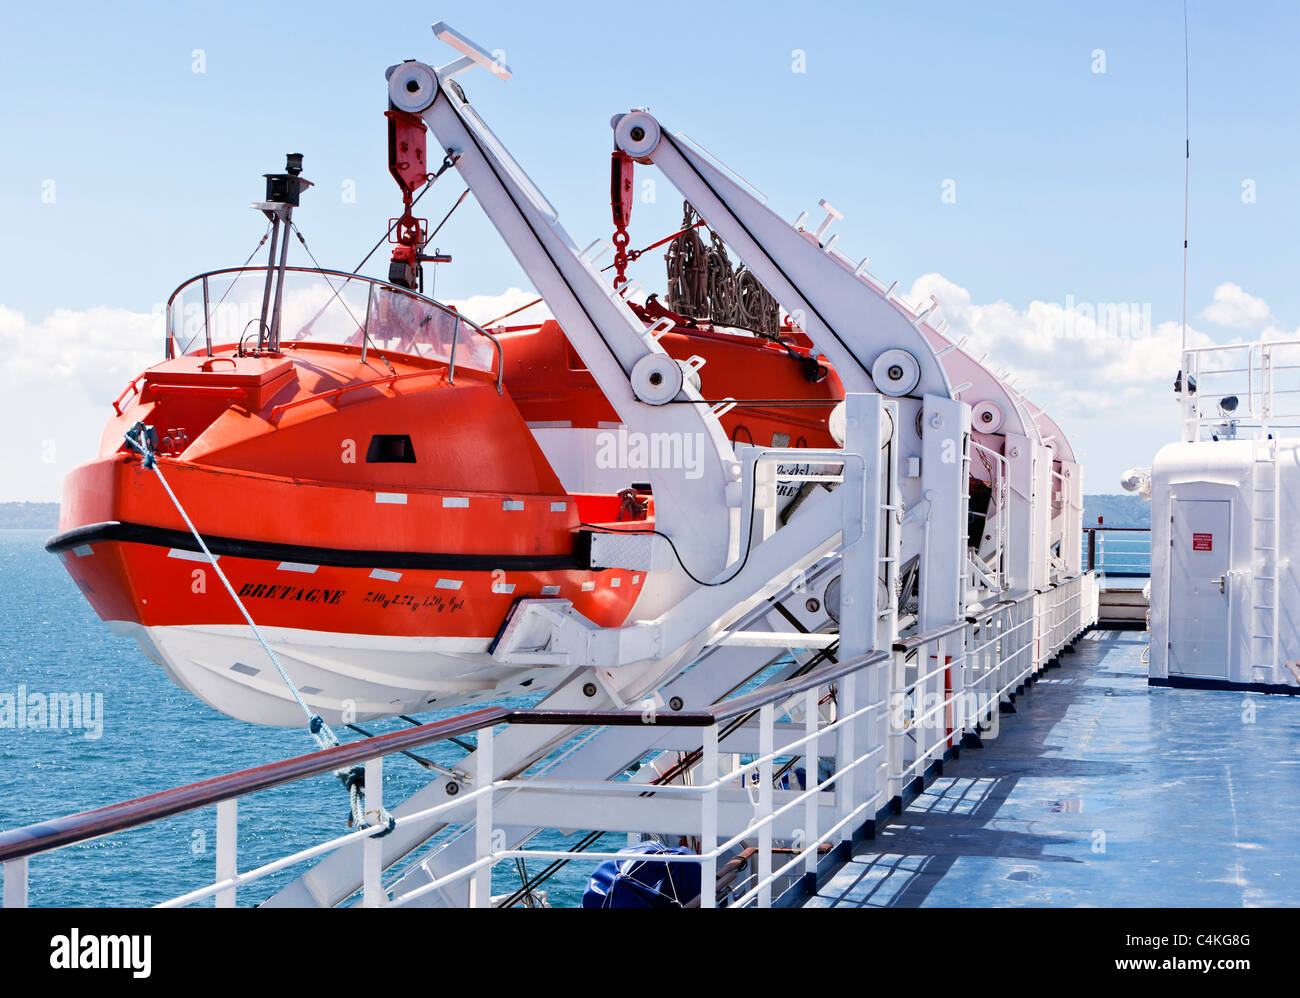 Lifeboats on board a cross channel ferry, France, Europe - Stock Image